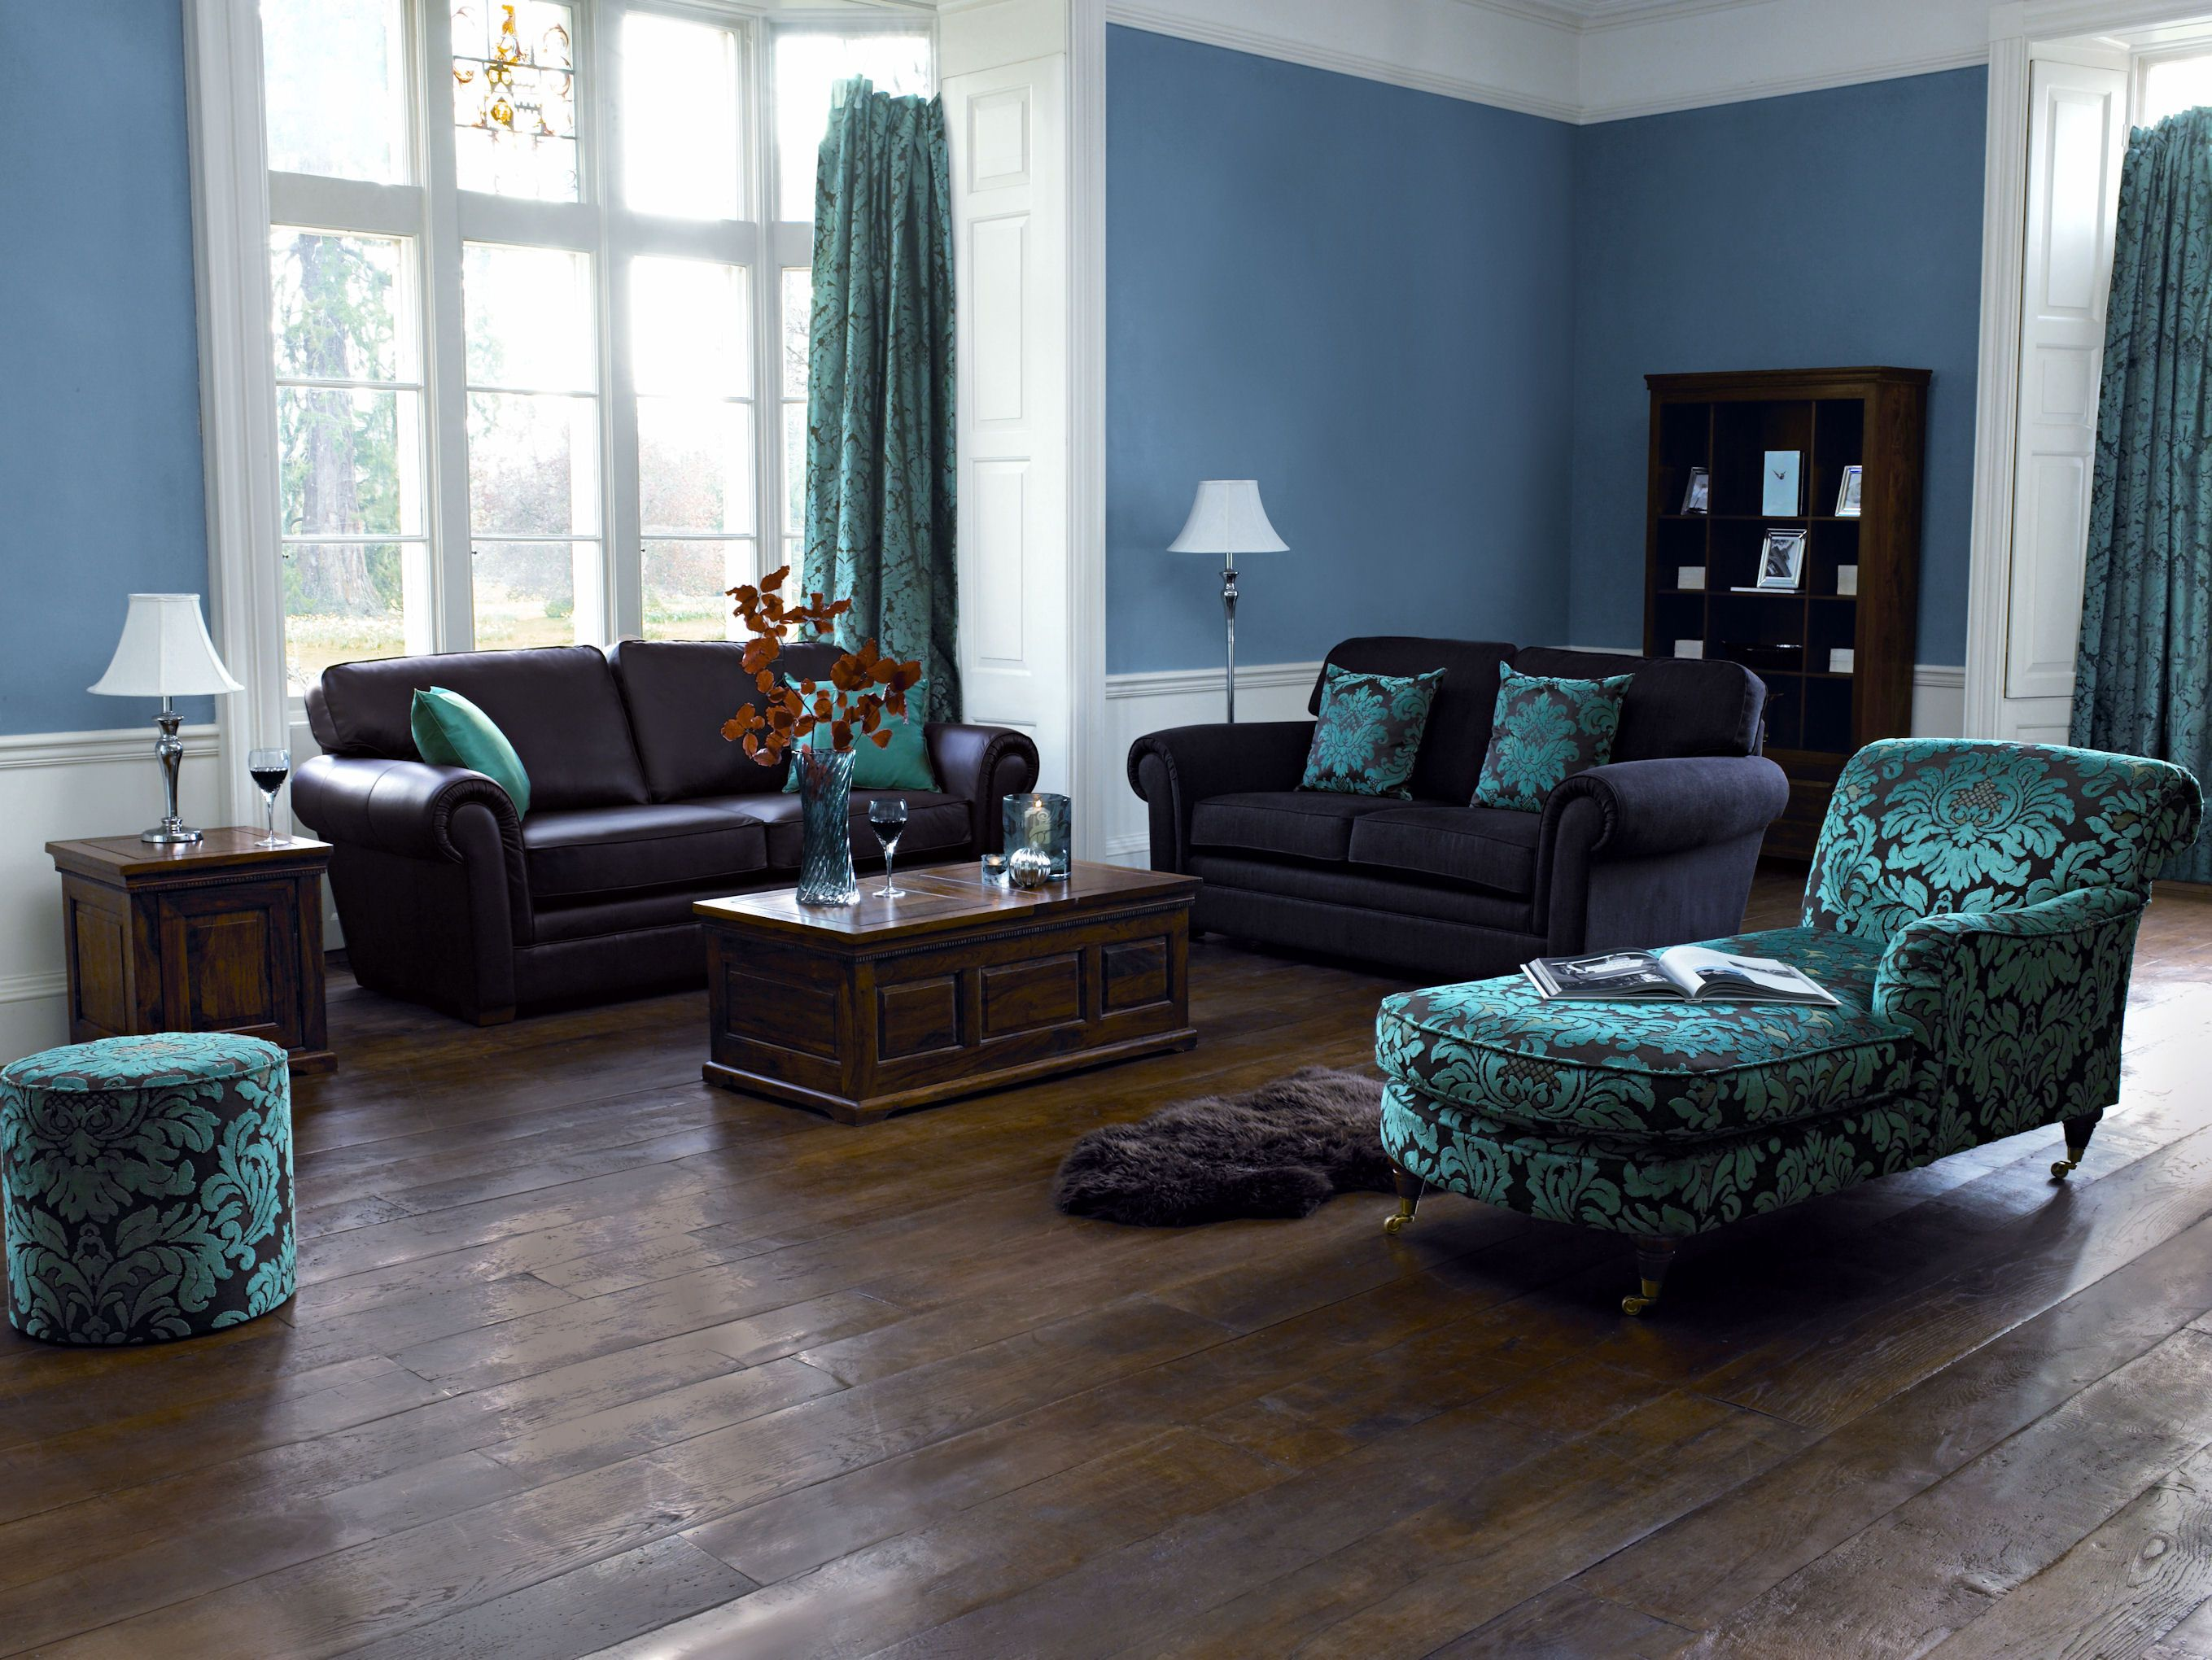 Dark blue living room - Blue Paint Color Ideas For Living Room With Dark Furniture And Dark Hardwood Floors